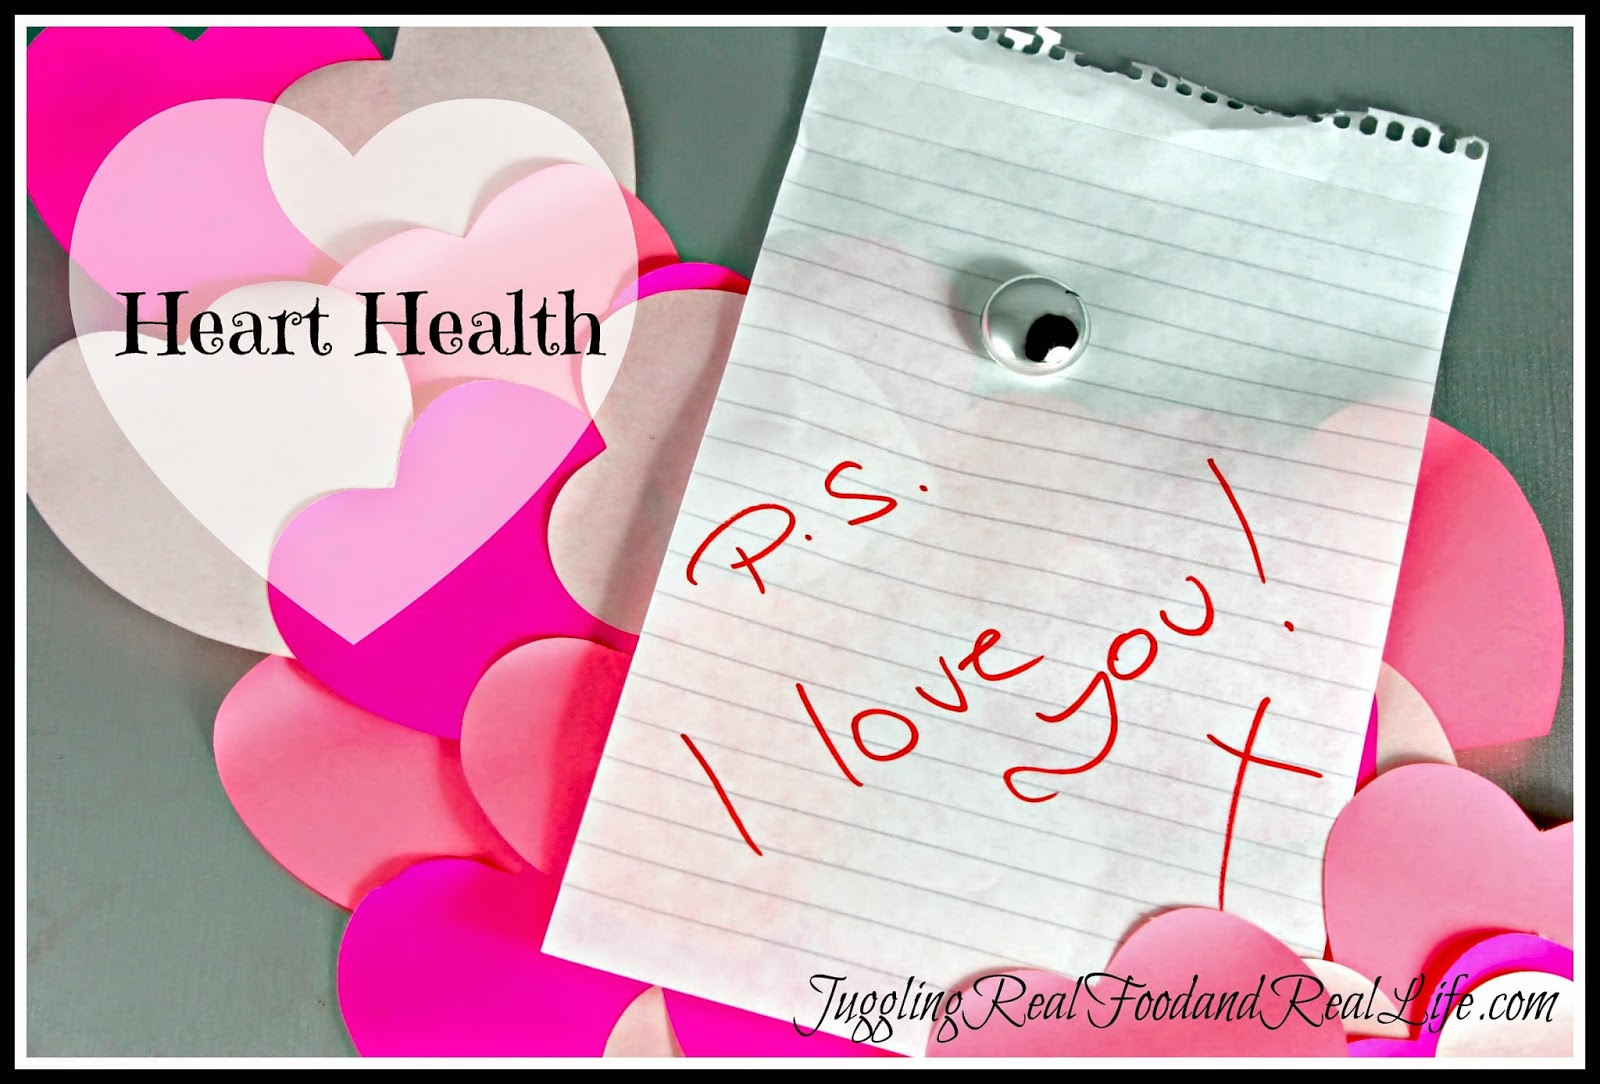 Healthy Diet for Heart Health